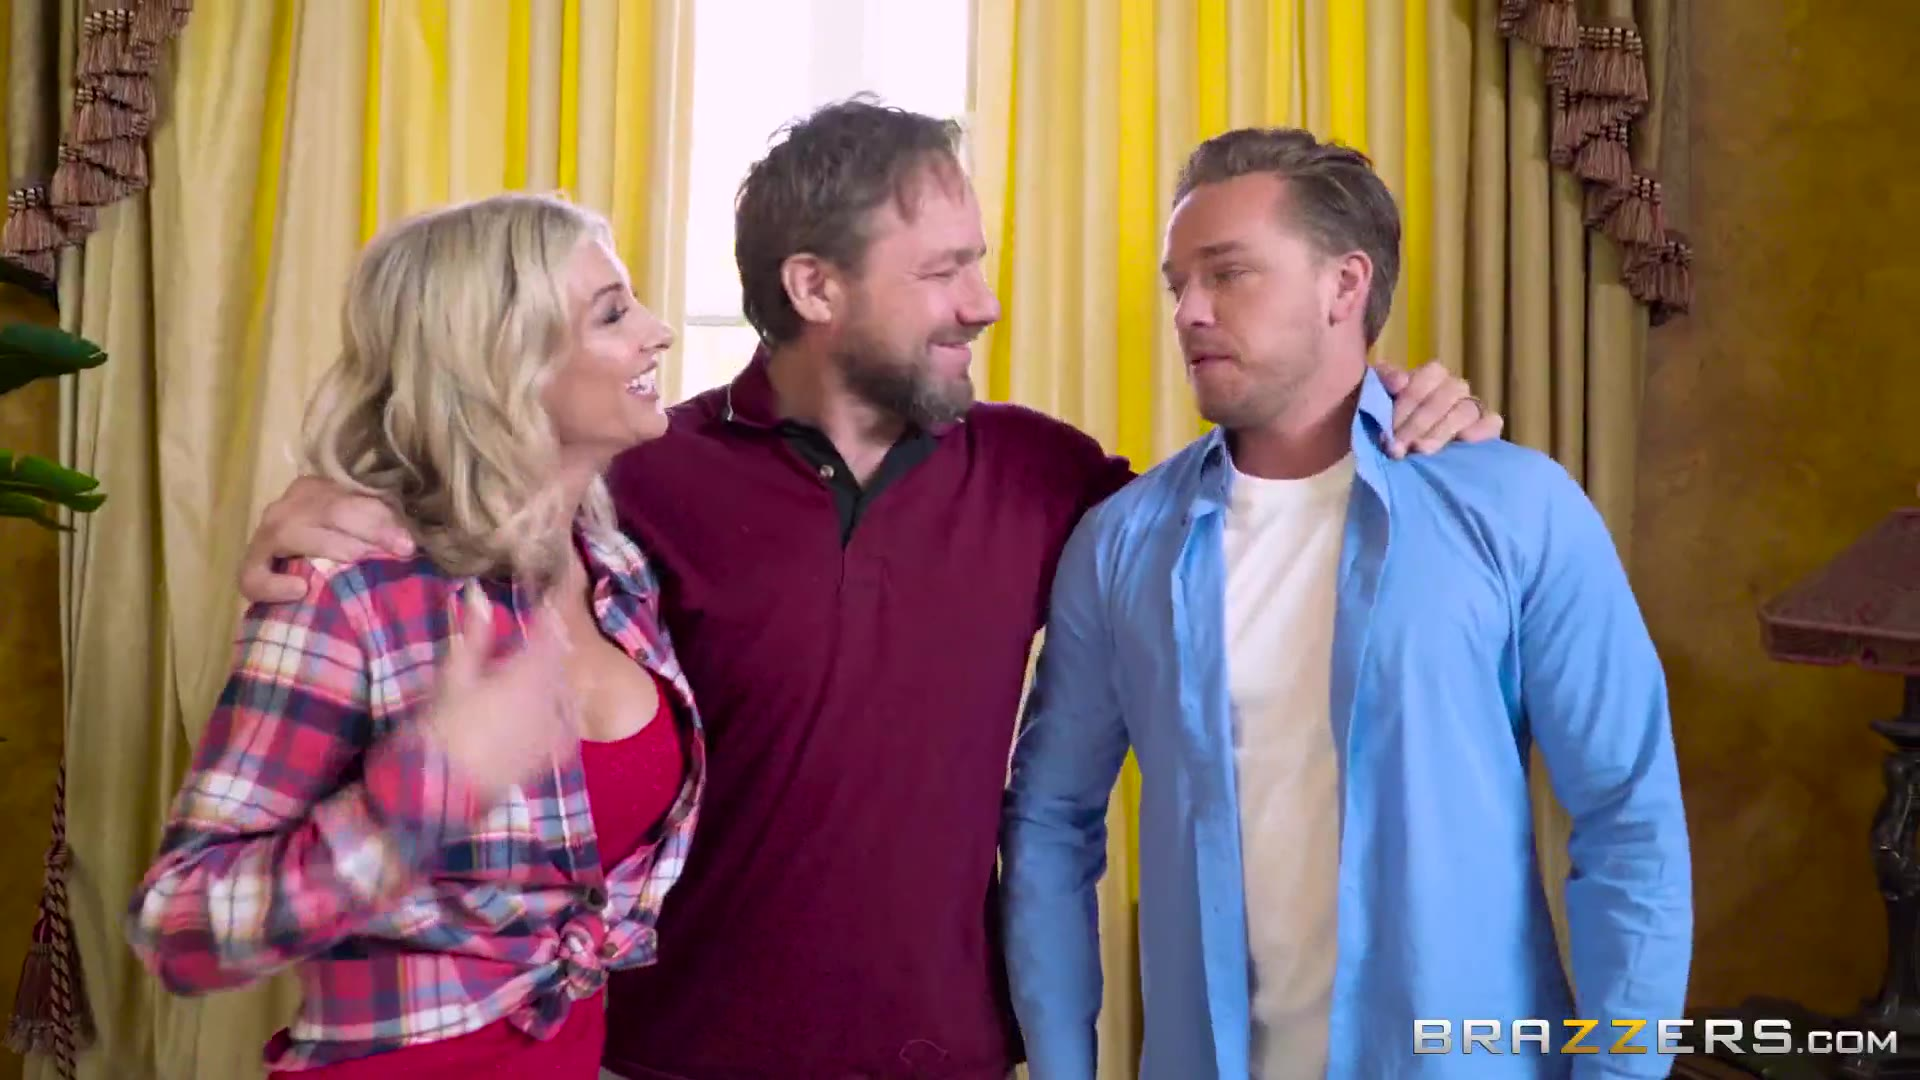 Busty blonde tastes her stepson's big cock during a family photo session